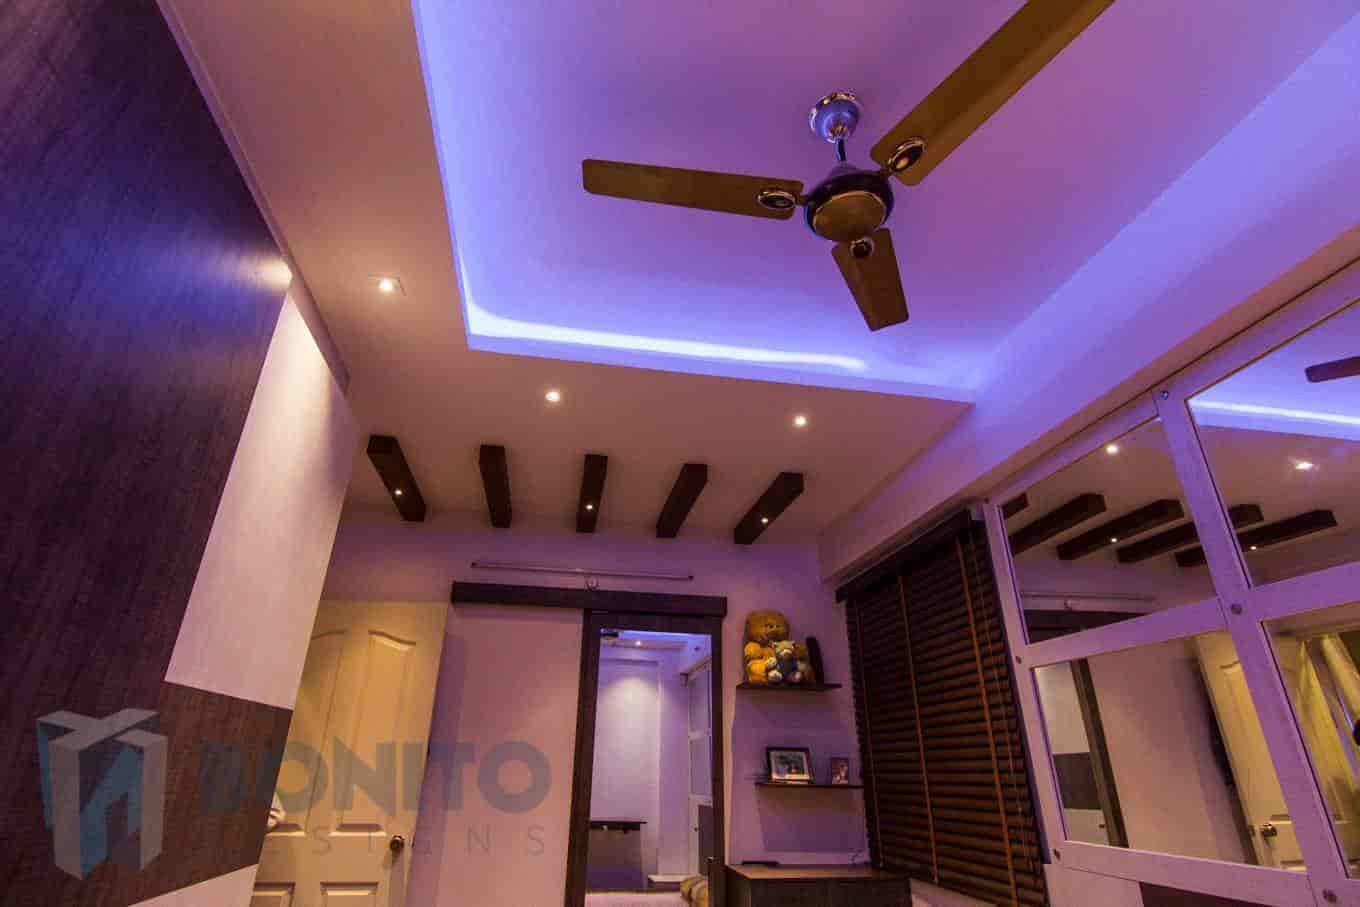 Bonito designs hsr layout sector 1 interior design firms for Architecture firms in sector 17